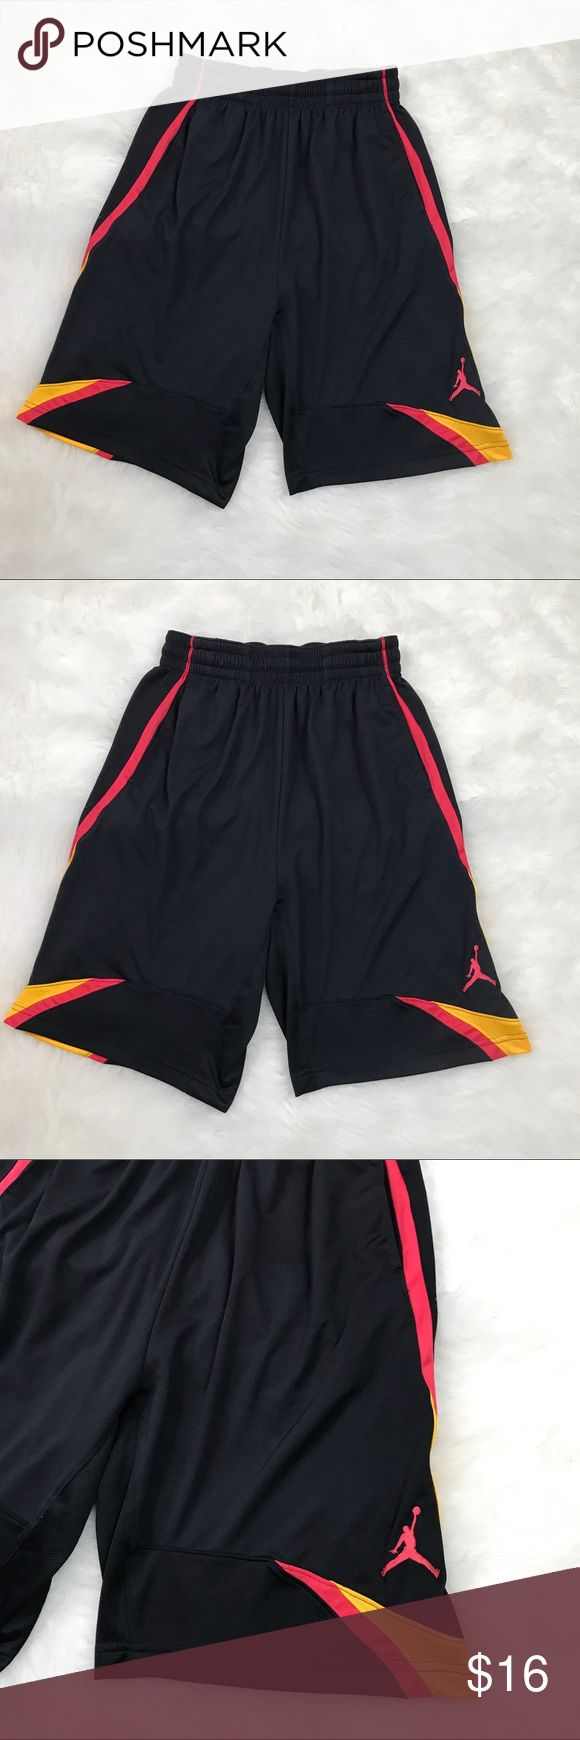 Jordan Dri Fit Athletic Shorts Small True Flights Jordan Brand - Dri Fit Athletic Shorts - Size Small - excellent condition - FAST SHIPPING! Smoke and pet free home. Jordan Shorts Athletic